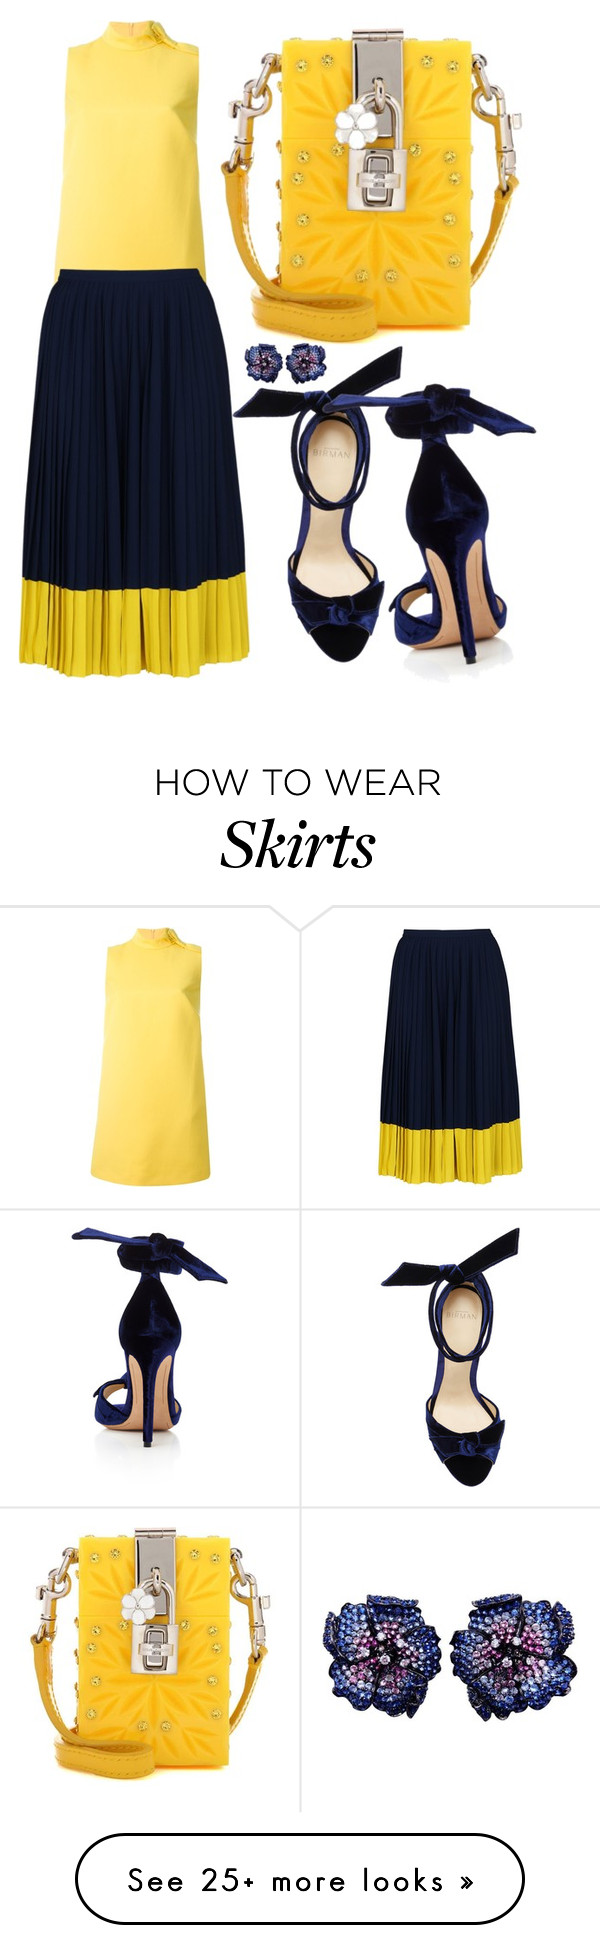 Dressing Sweet style, How to graduation wear hat with bangs